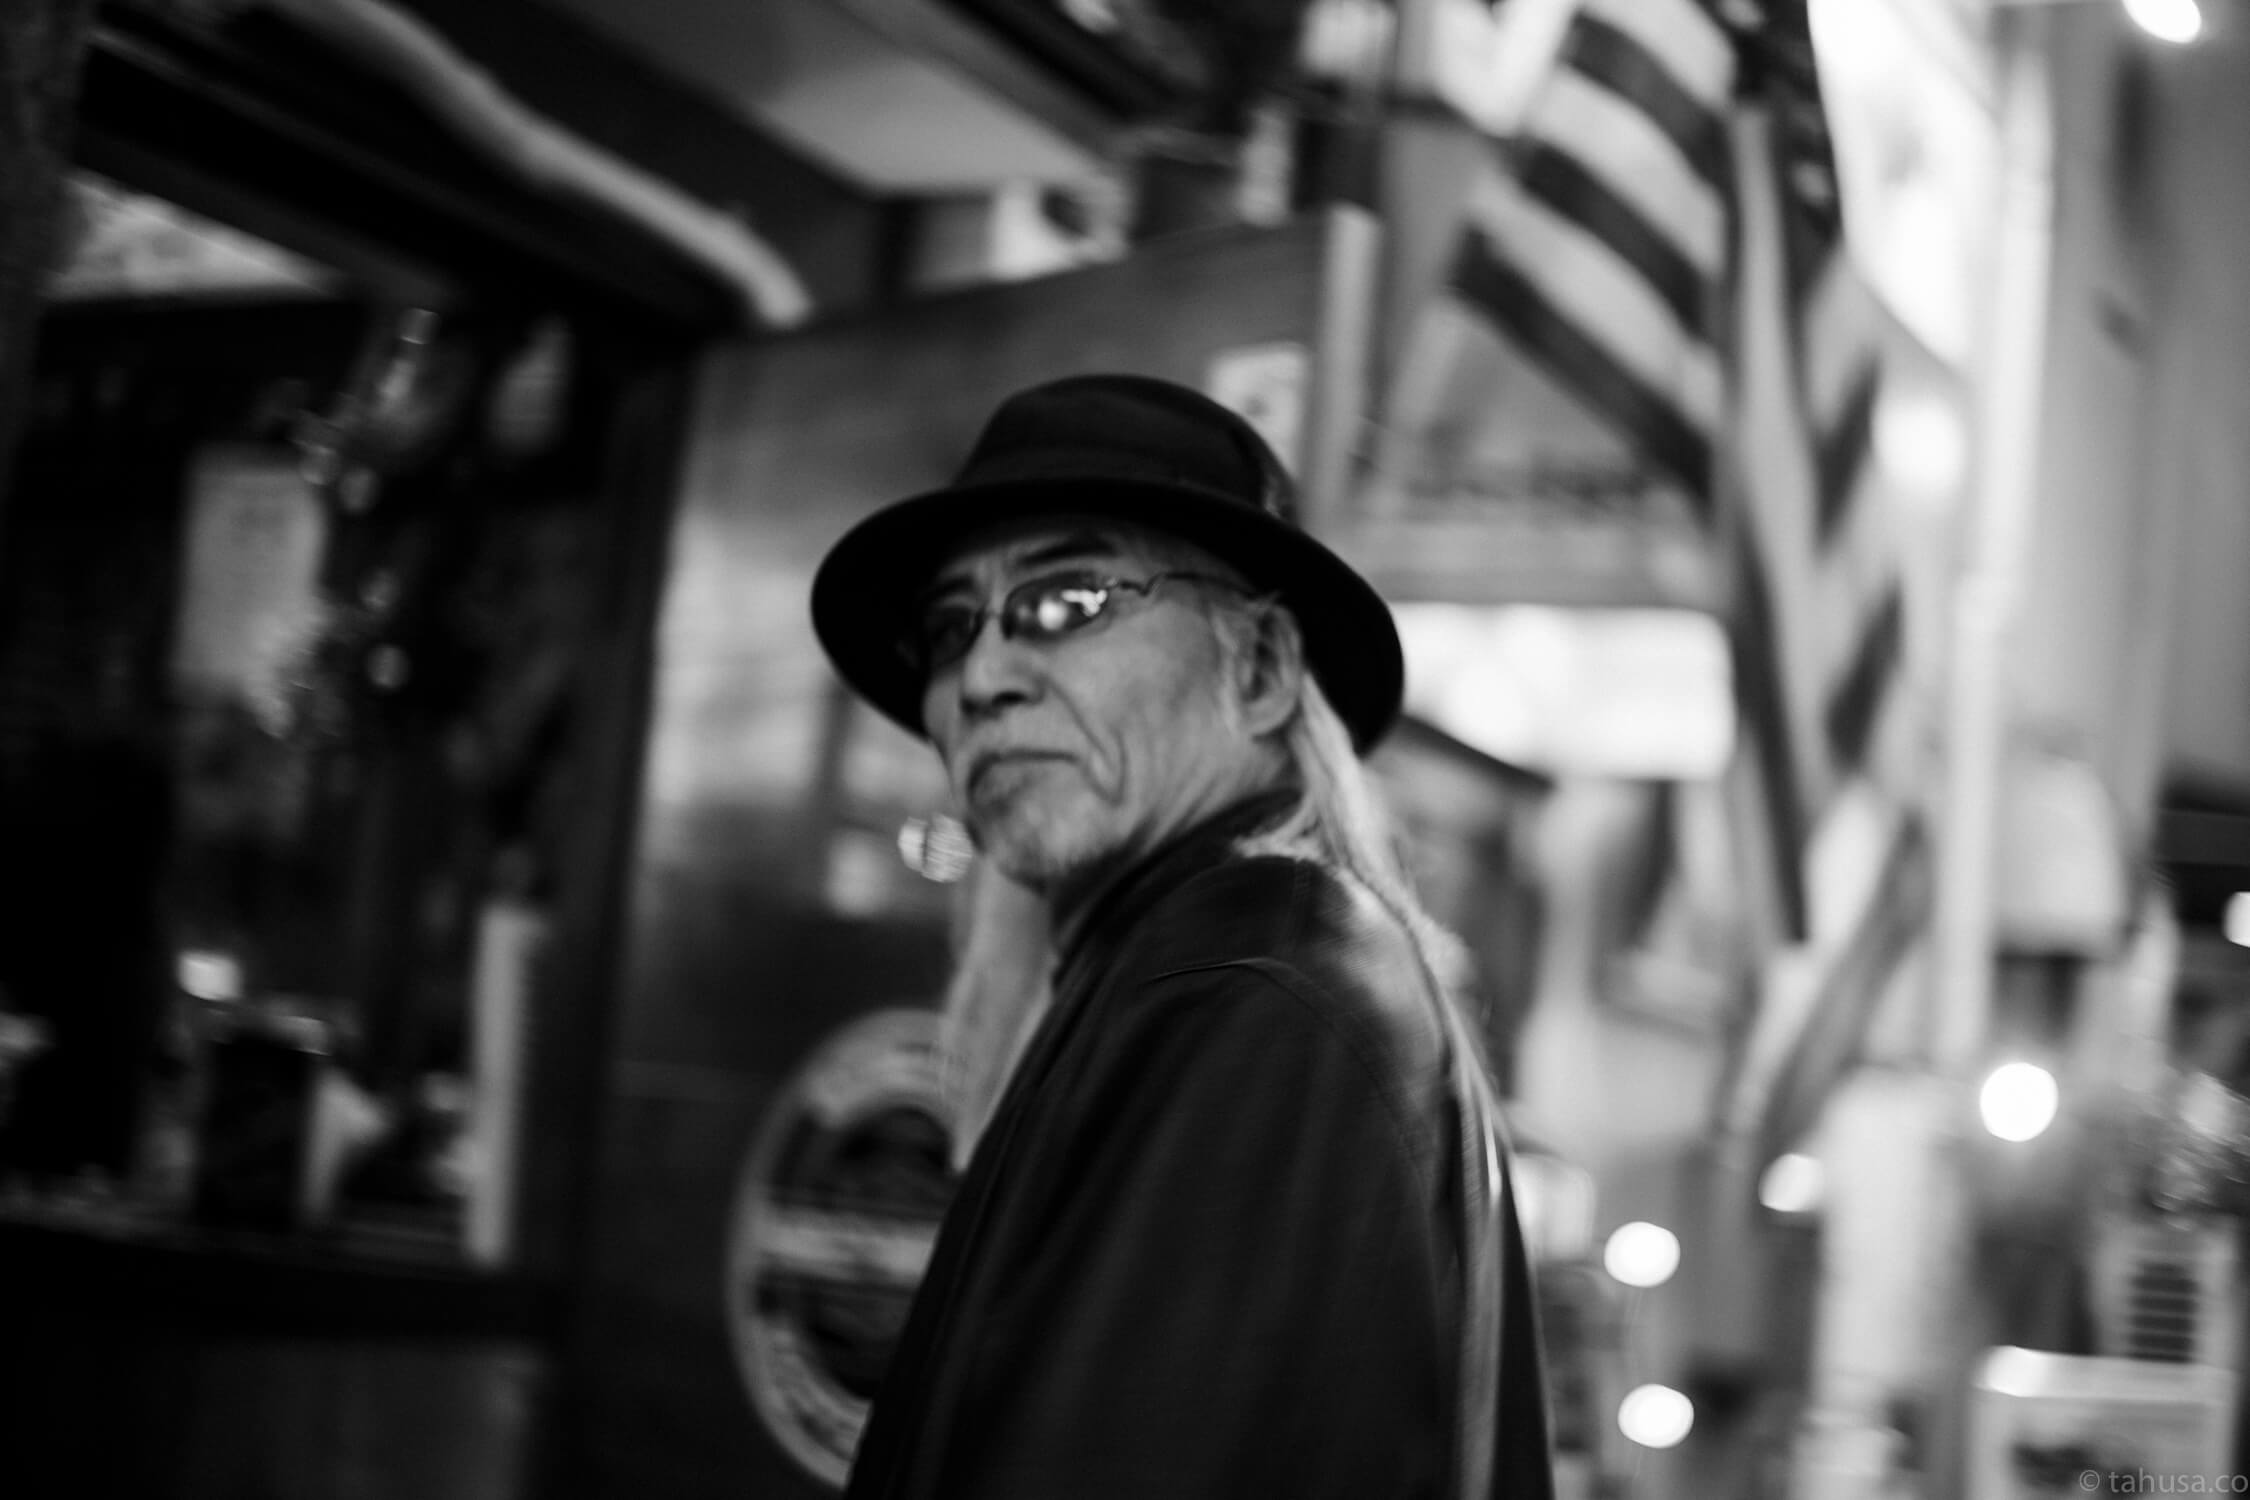 Cool-guy-with-sunglasses-at-night-time-inside-Goldengai-Golden-Gai-Famous-shinjuku-district-japan-street-tokyo-streetphotography-blackandwhite-BW-B&W-japanese-travel-with-Sony-A7-A7II-digital-camera-old-nokton-voigtlander-50mm-f1.5-1.5-prominent-mount-vintage